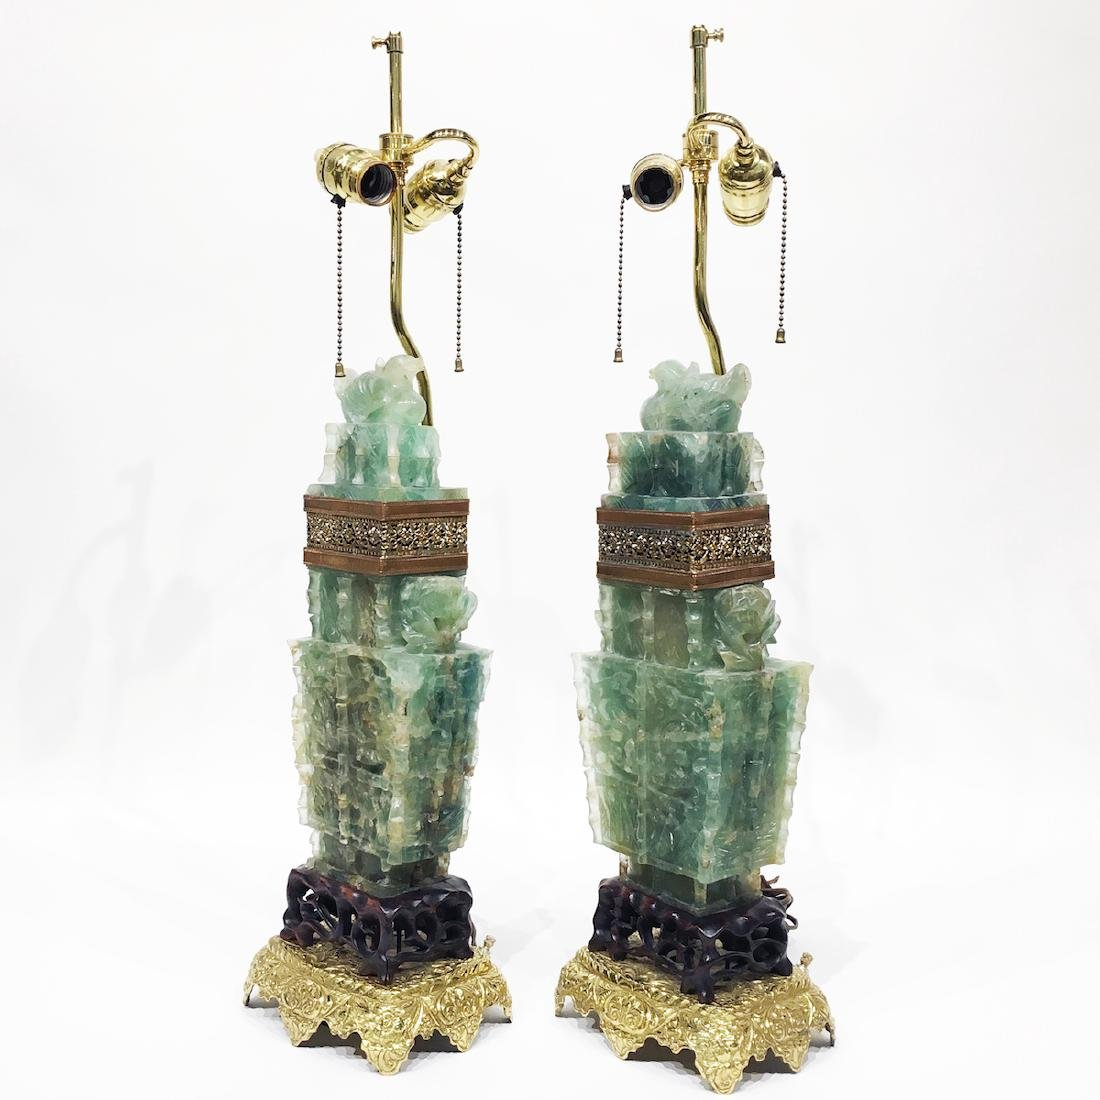 Pair of Chinese Green Nephrite Lamps - 2